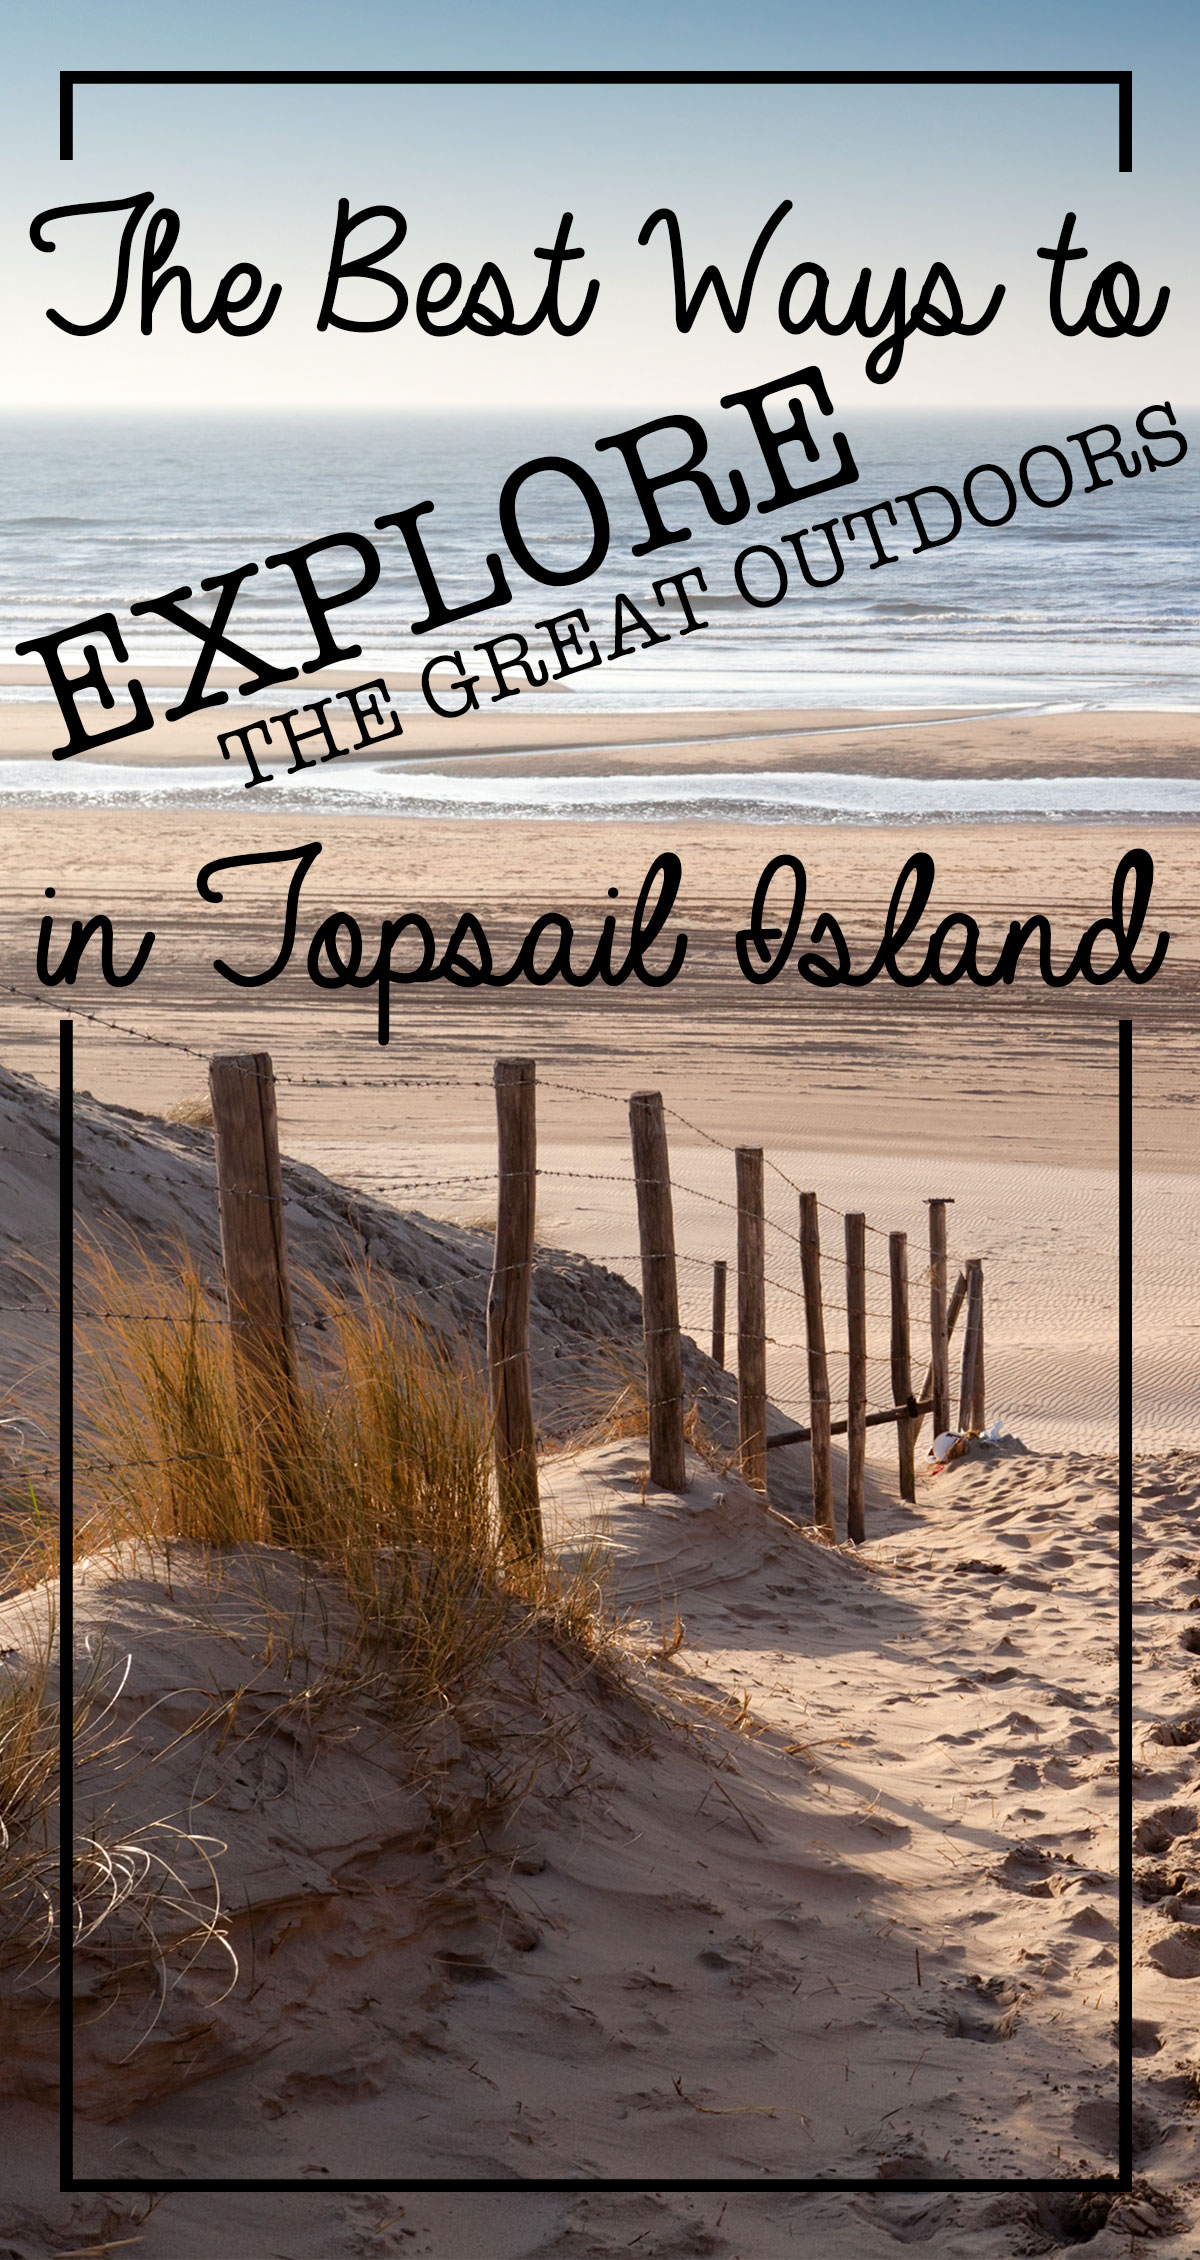 The Best Ways to Explore the Great Outdoors on Topsail Island Pin